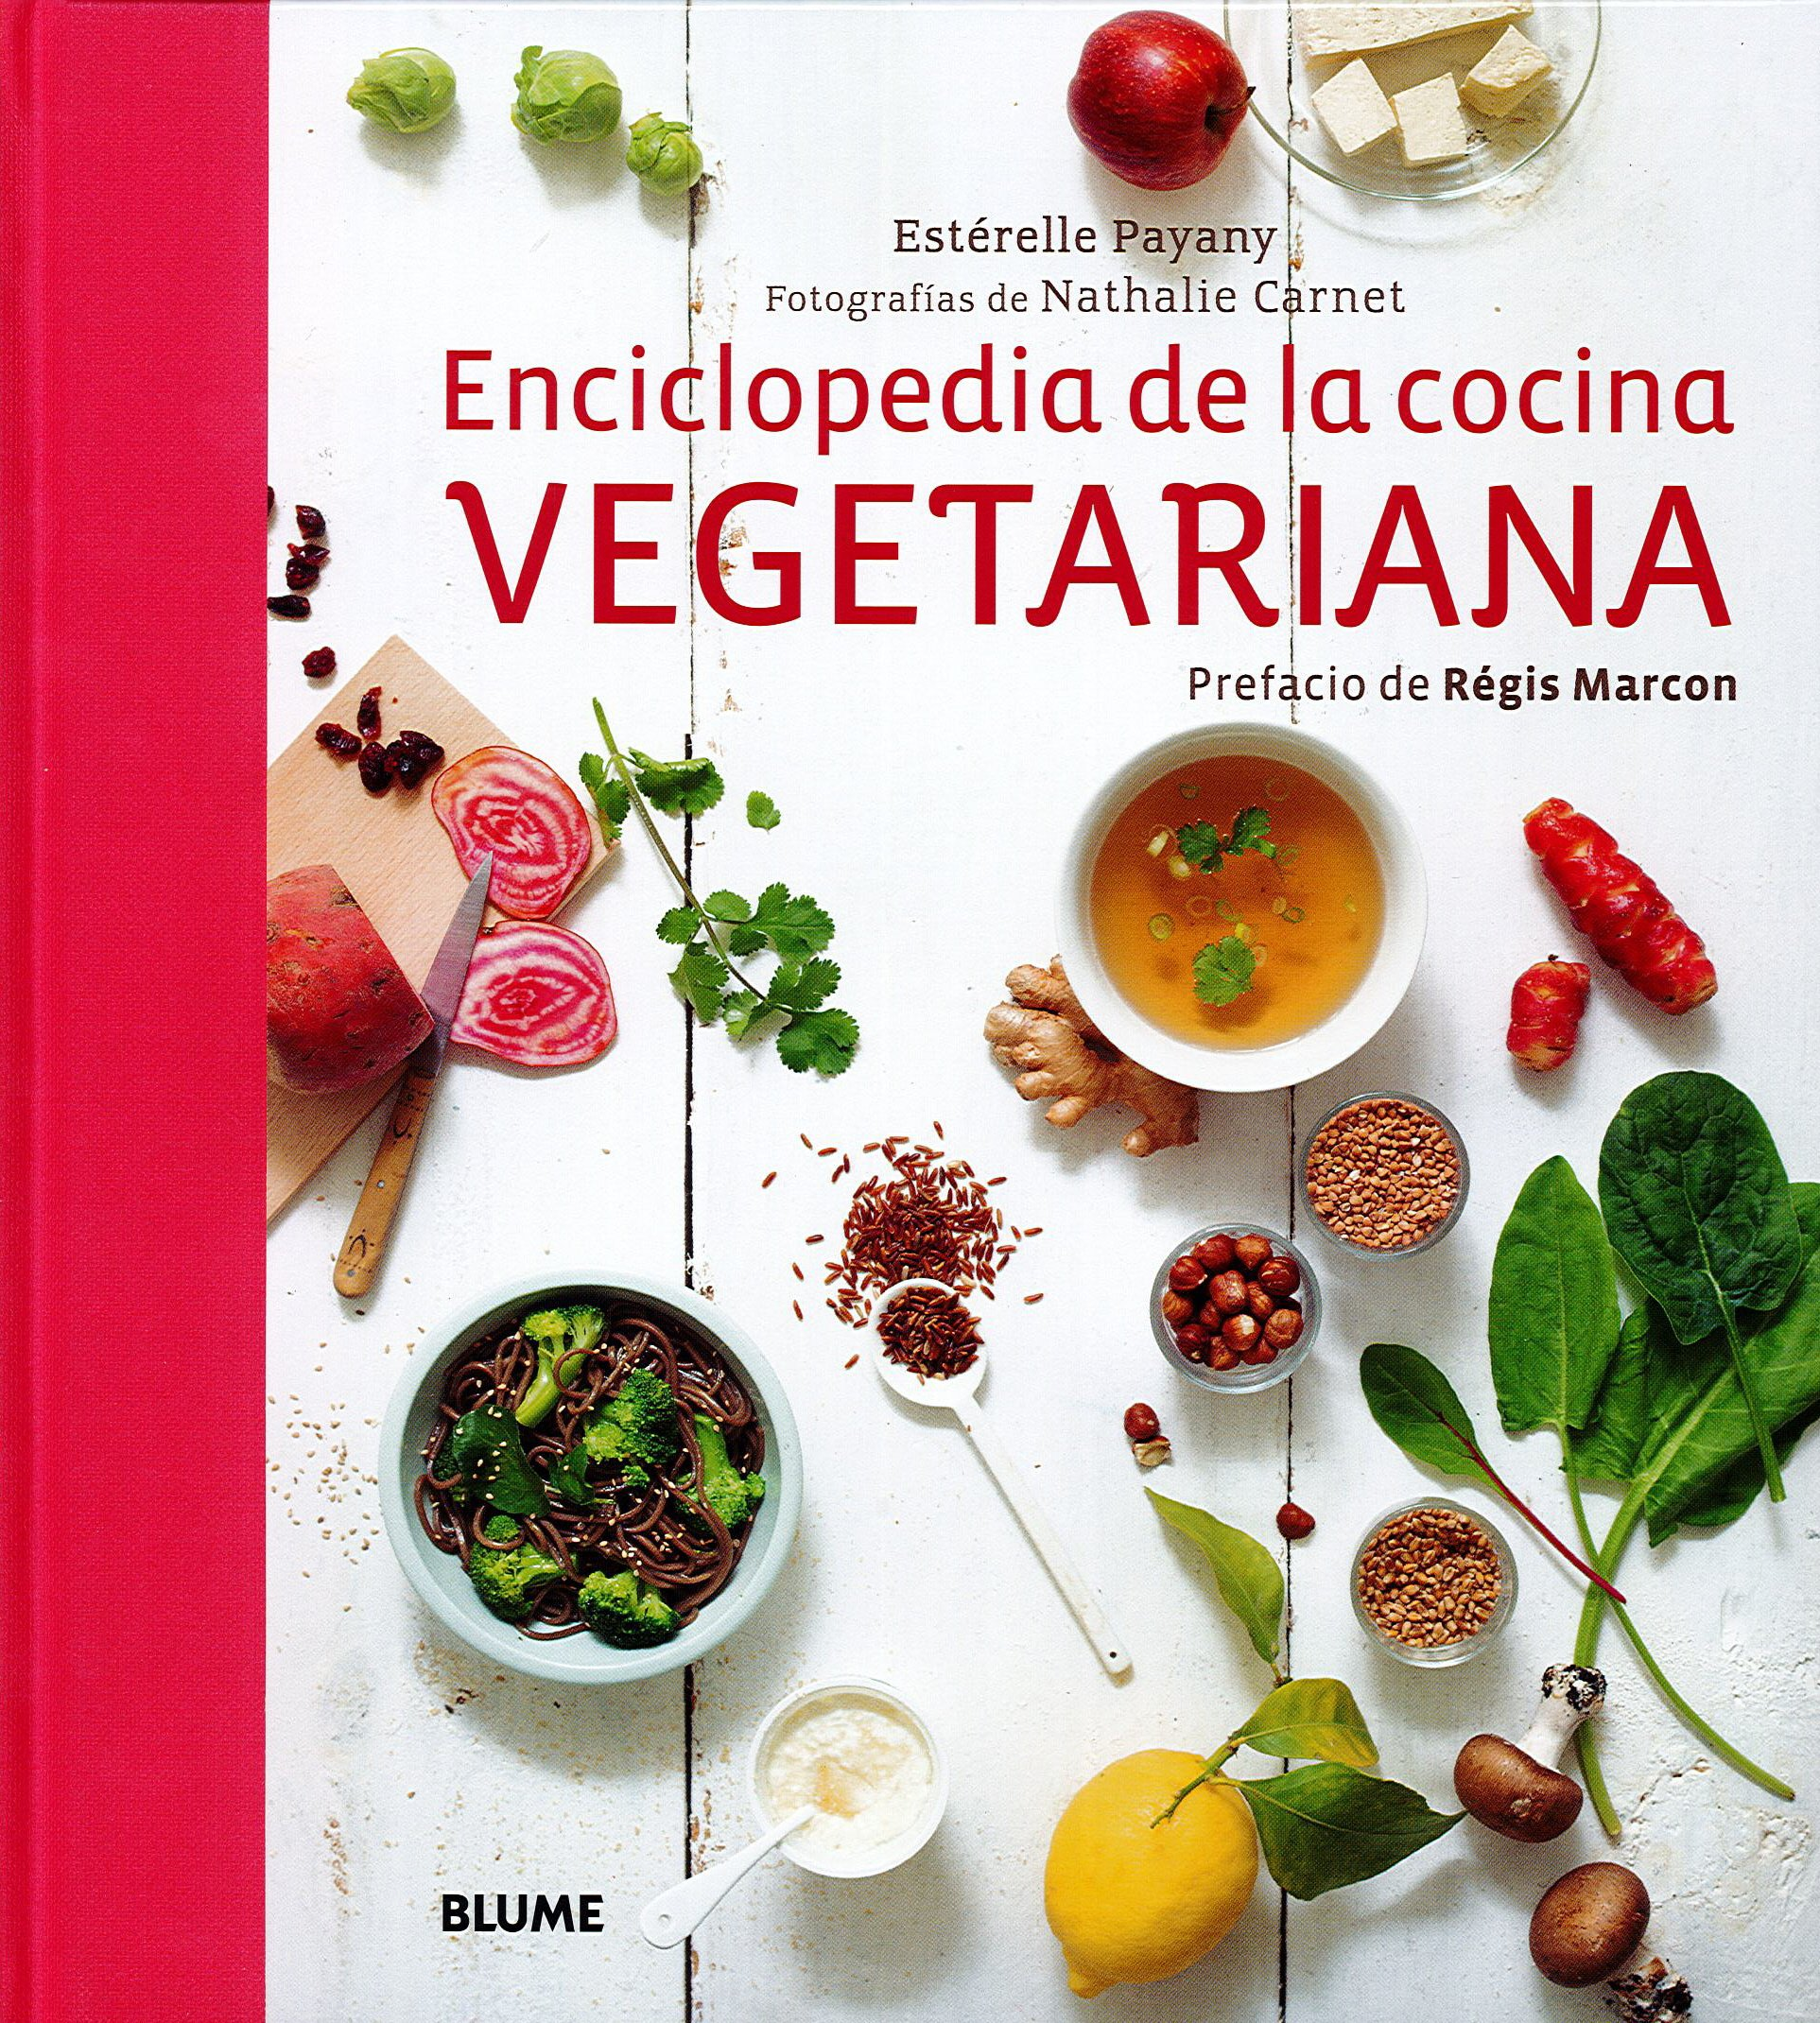 Enciclopedia de la cocina vegetariana: Vicki / Thomas, Heather Edgson: 9788416138715: Amazon.com: Books